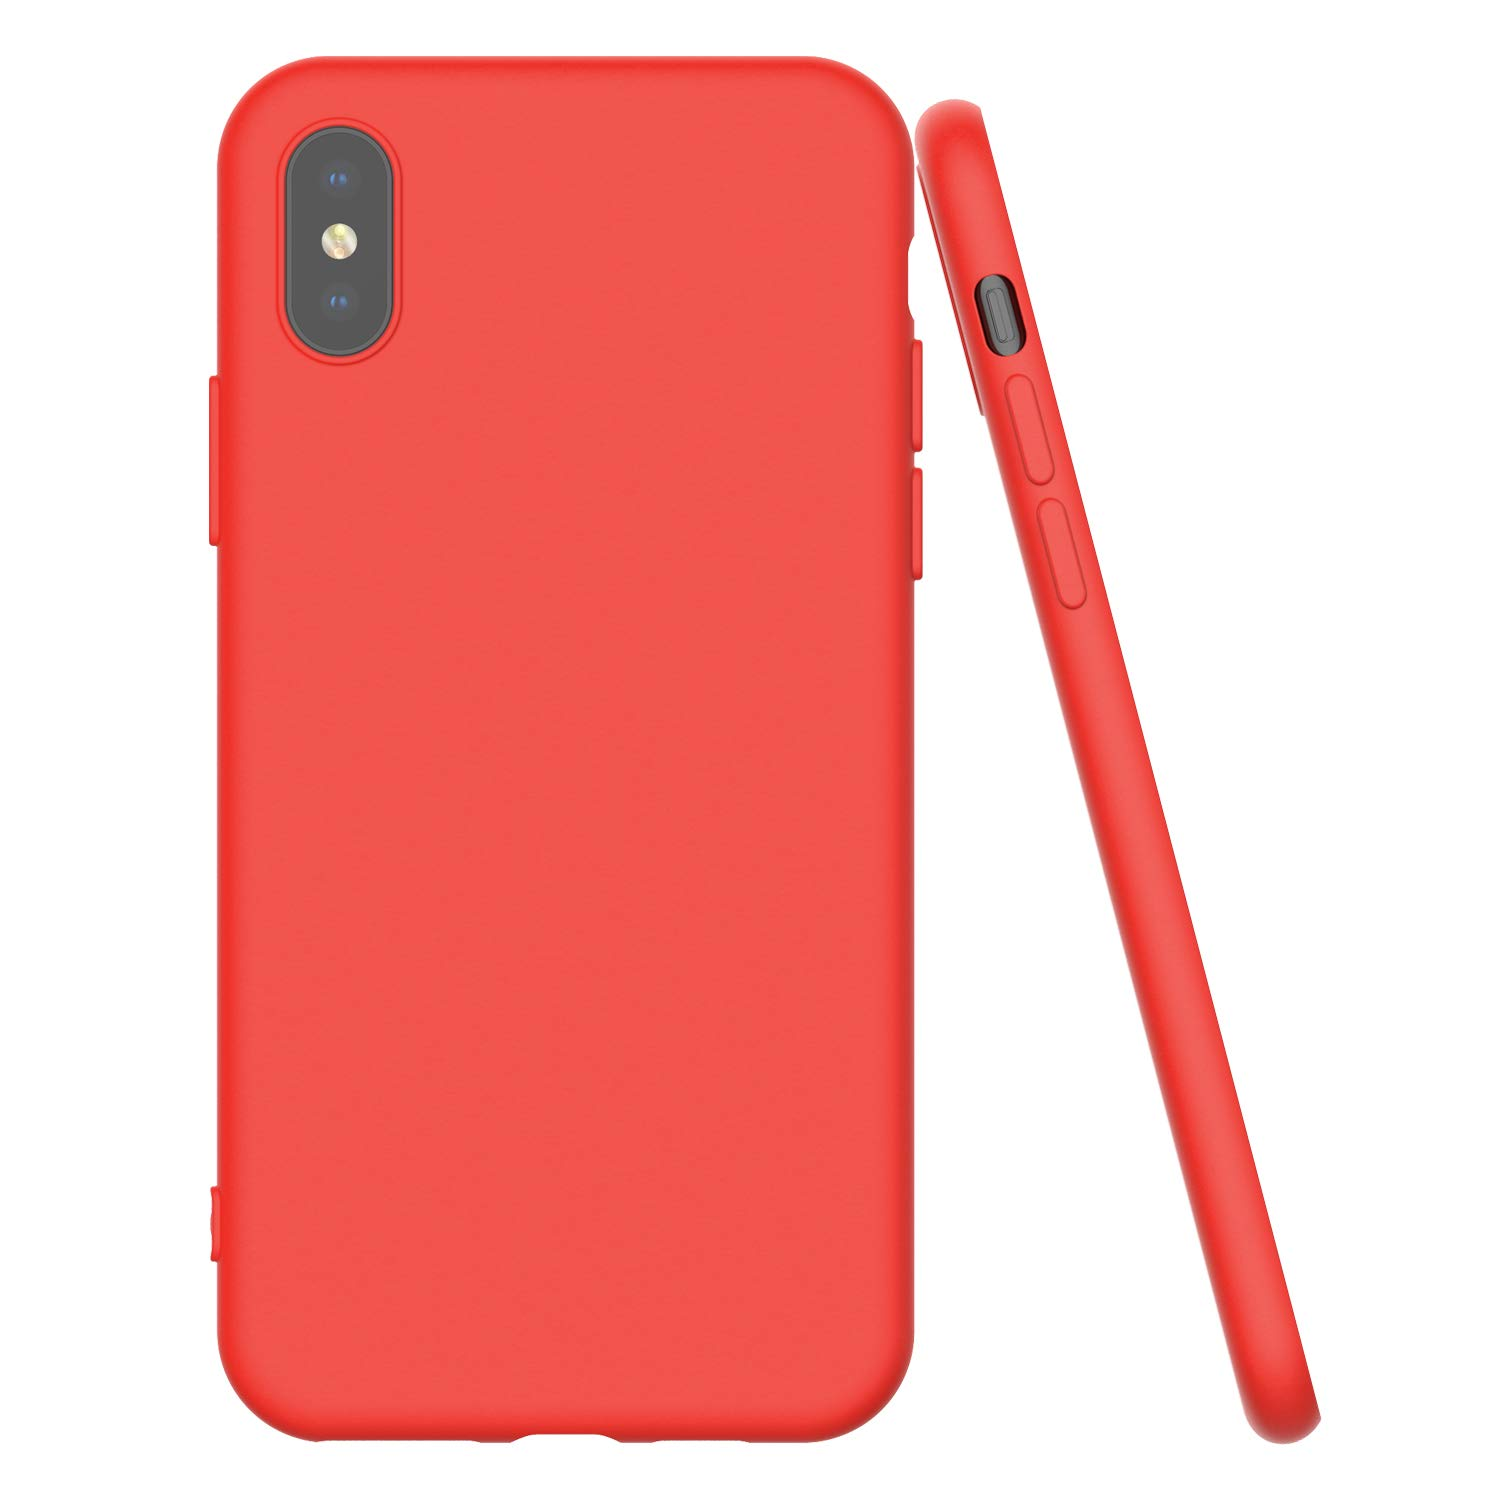 Shamo's Ultra Thin Case for iPhone Xs MAX with Soft Microfiber Cloth Lining Cushion, Slim Fit Flexible Soft TPU - Shockproof Protective Cover - Matte (Red)